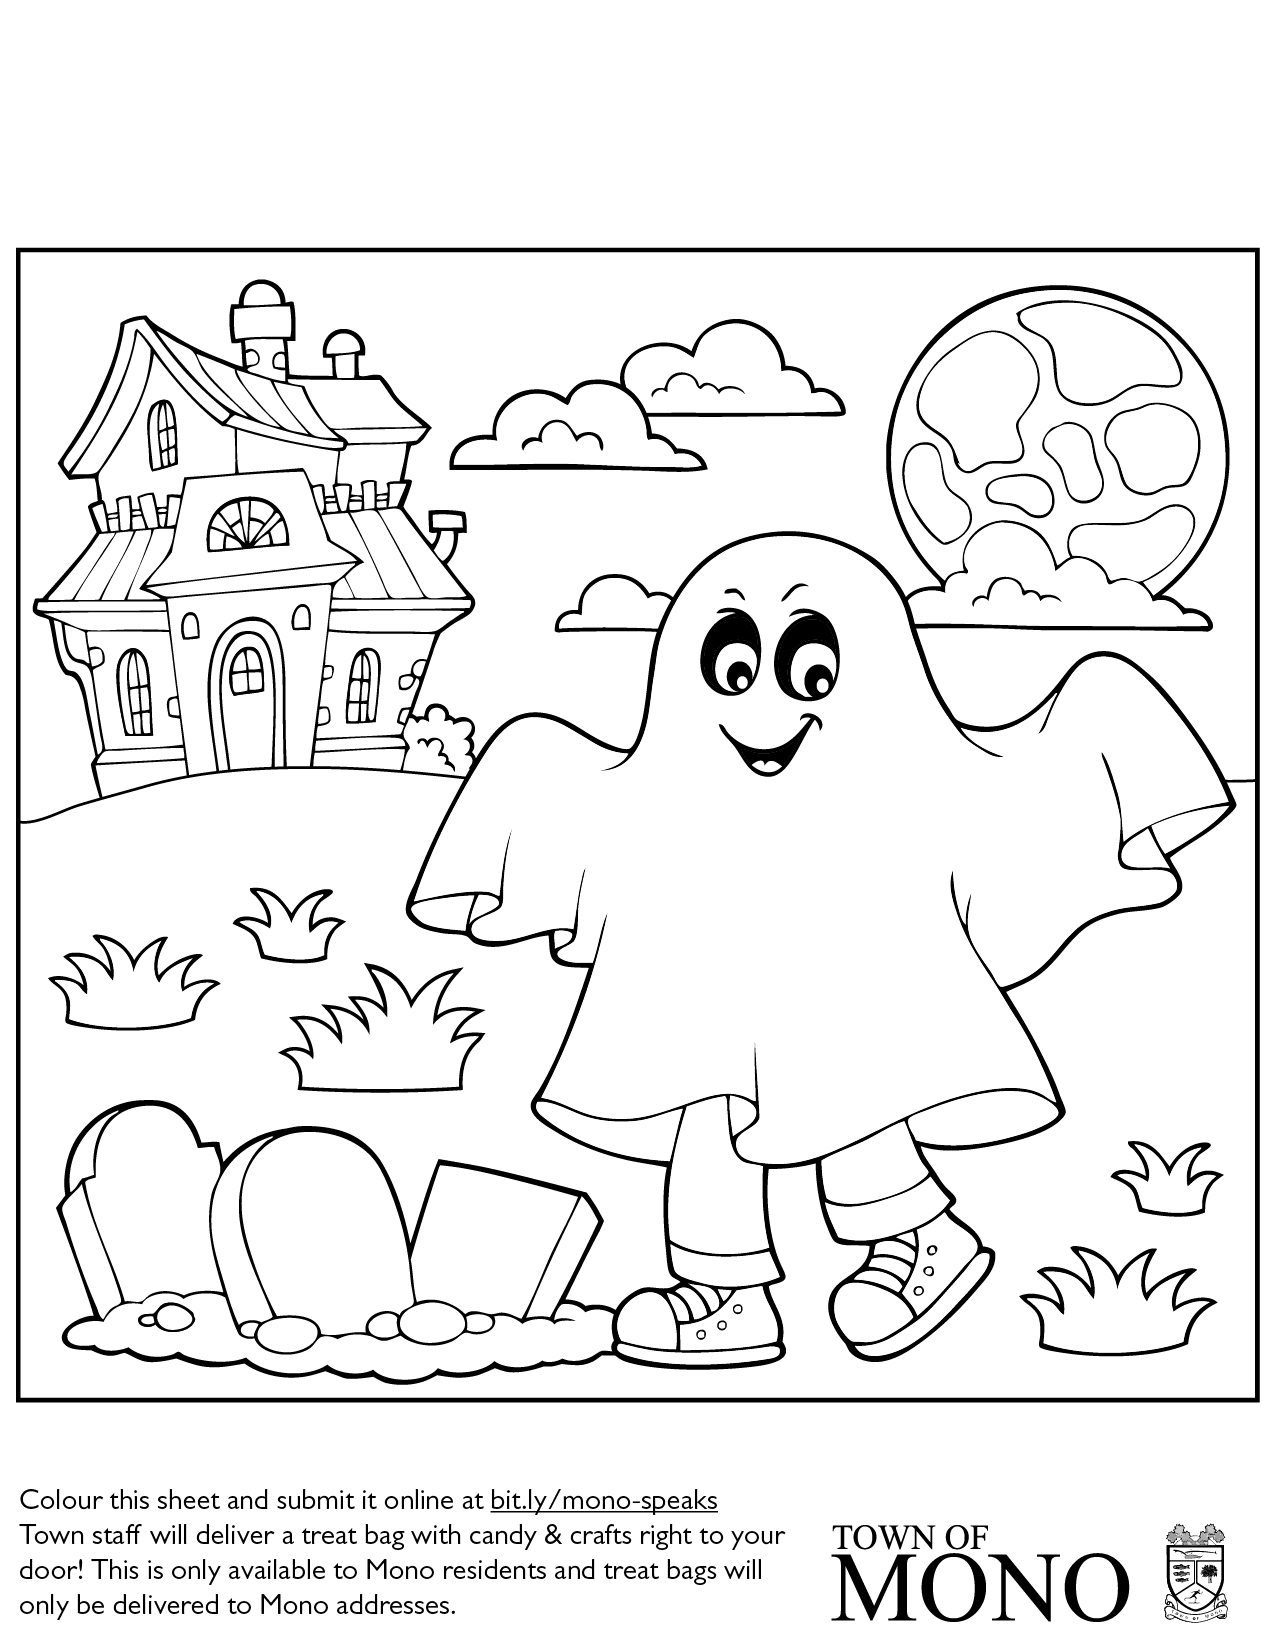 Colouring sheet: trick-or-treating ghost with haunted house, moon, and graves.